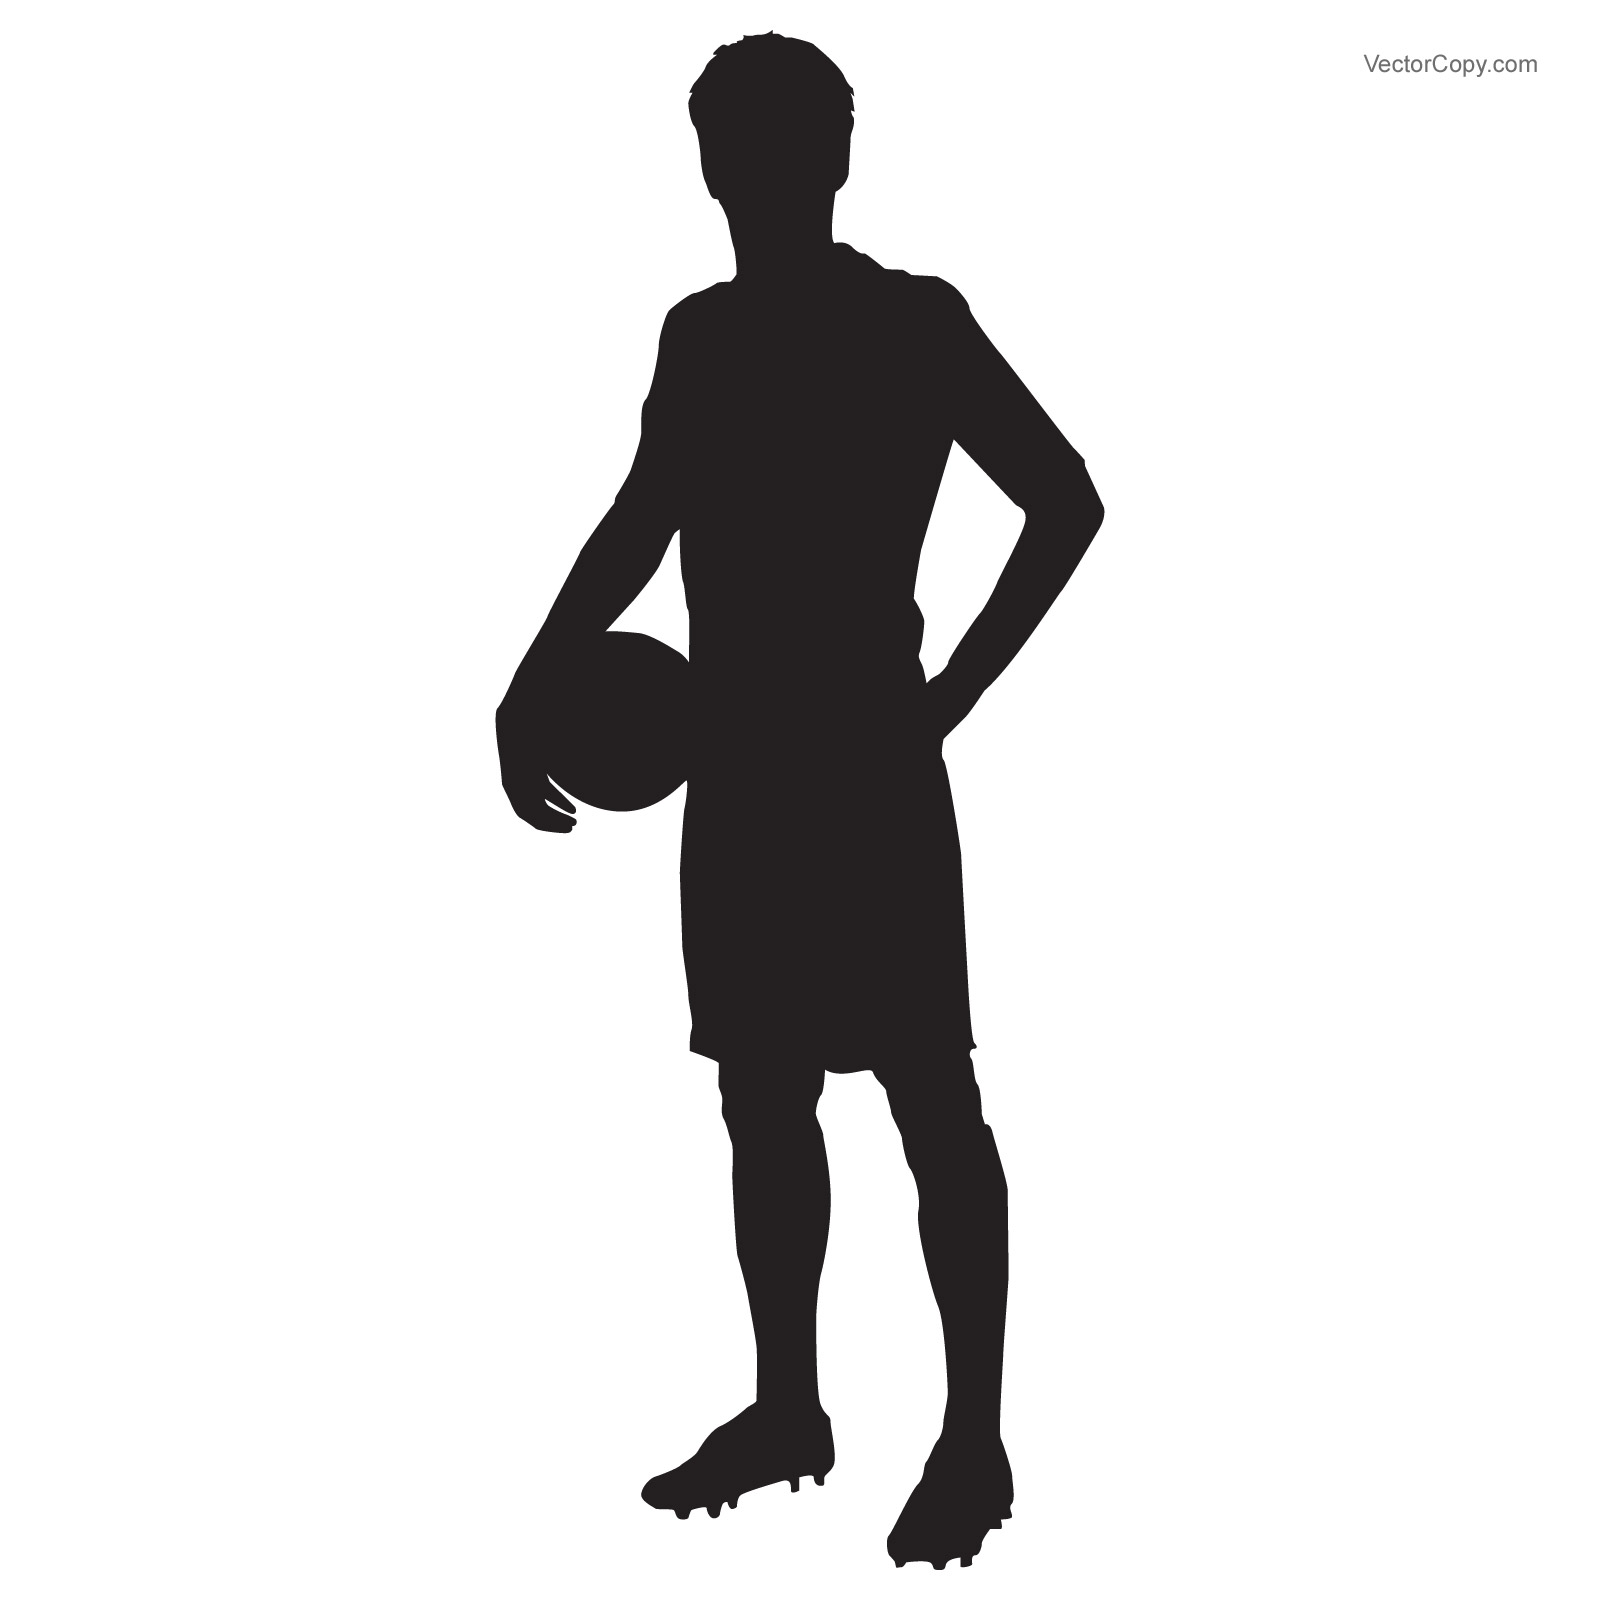 1600x1600 Silhouette Of Soccer(Football) Player Free Download Vector Clipart